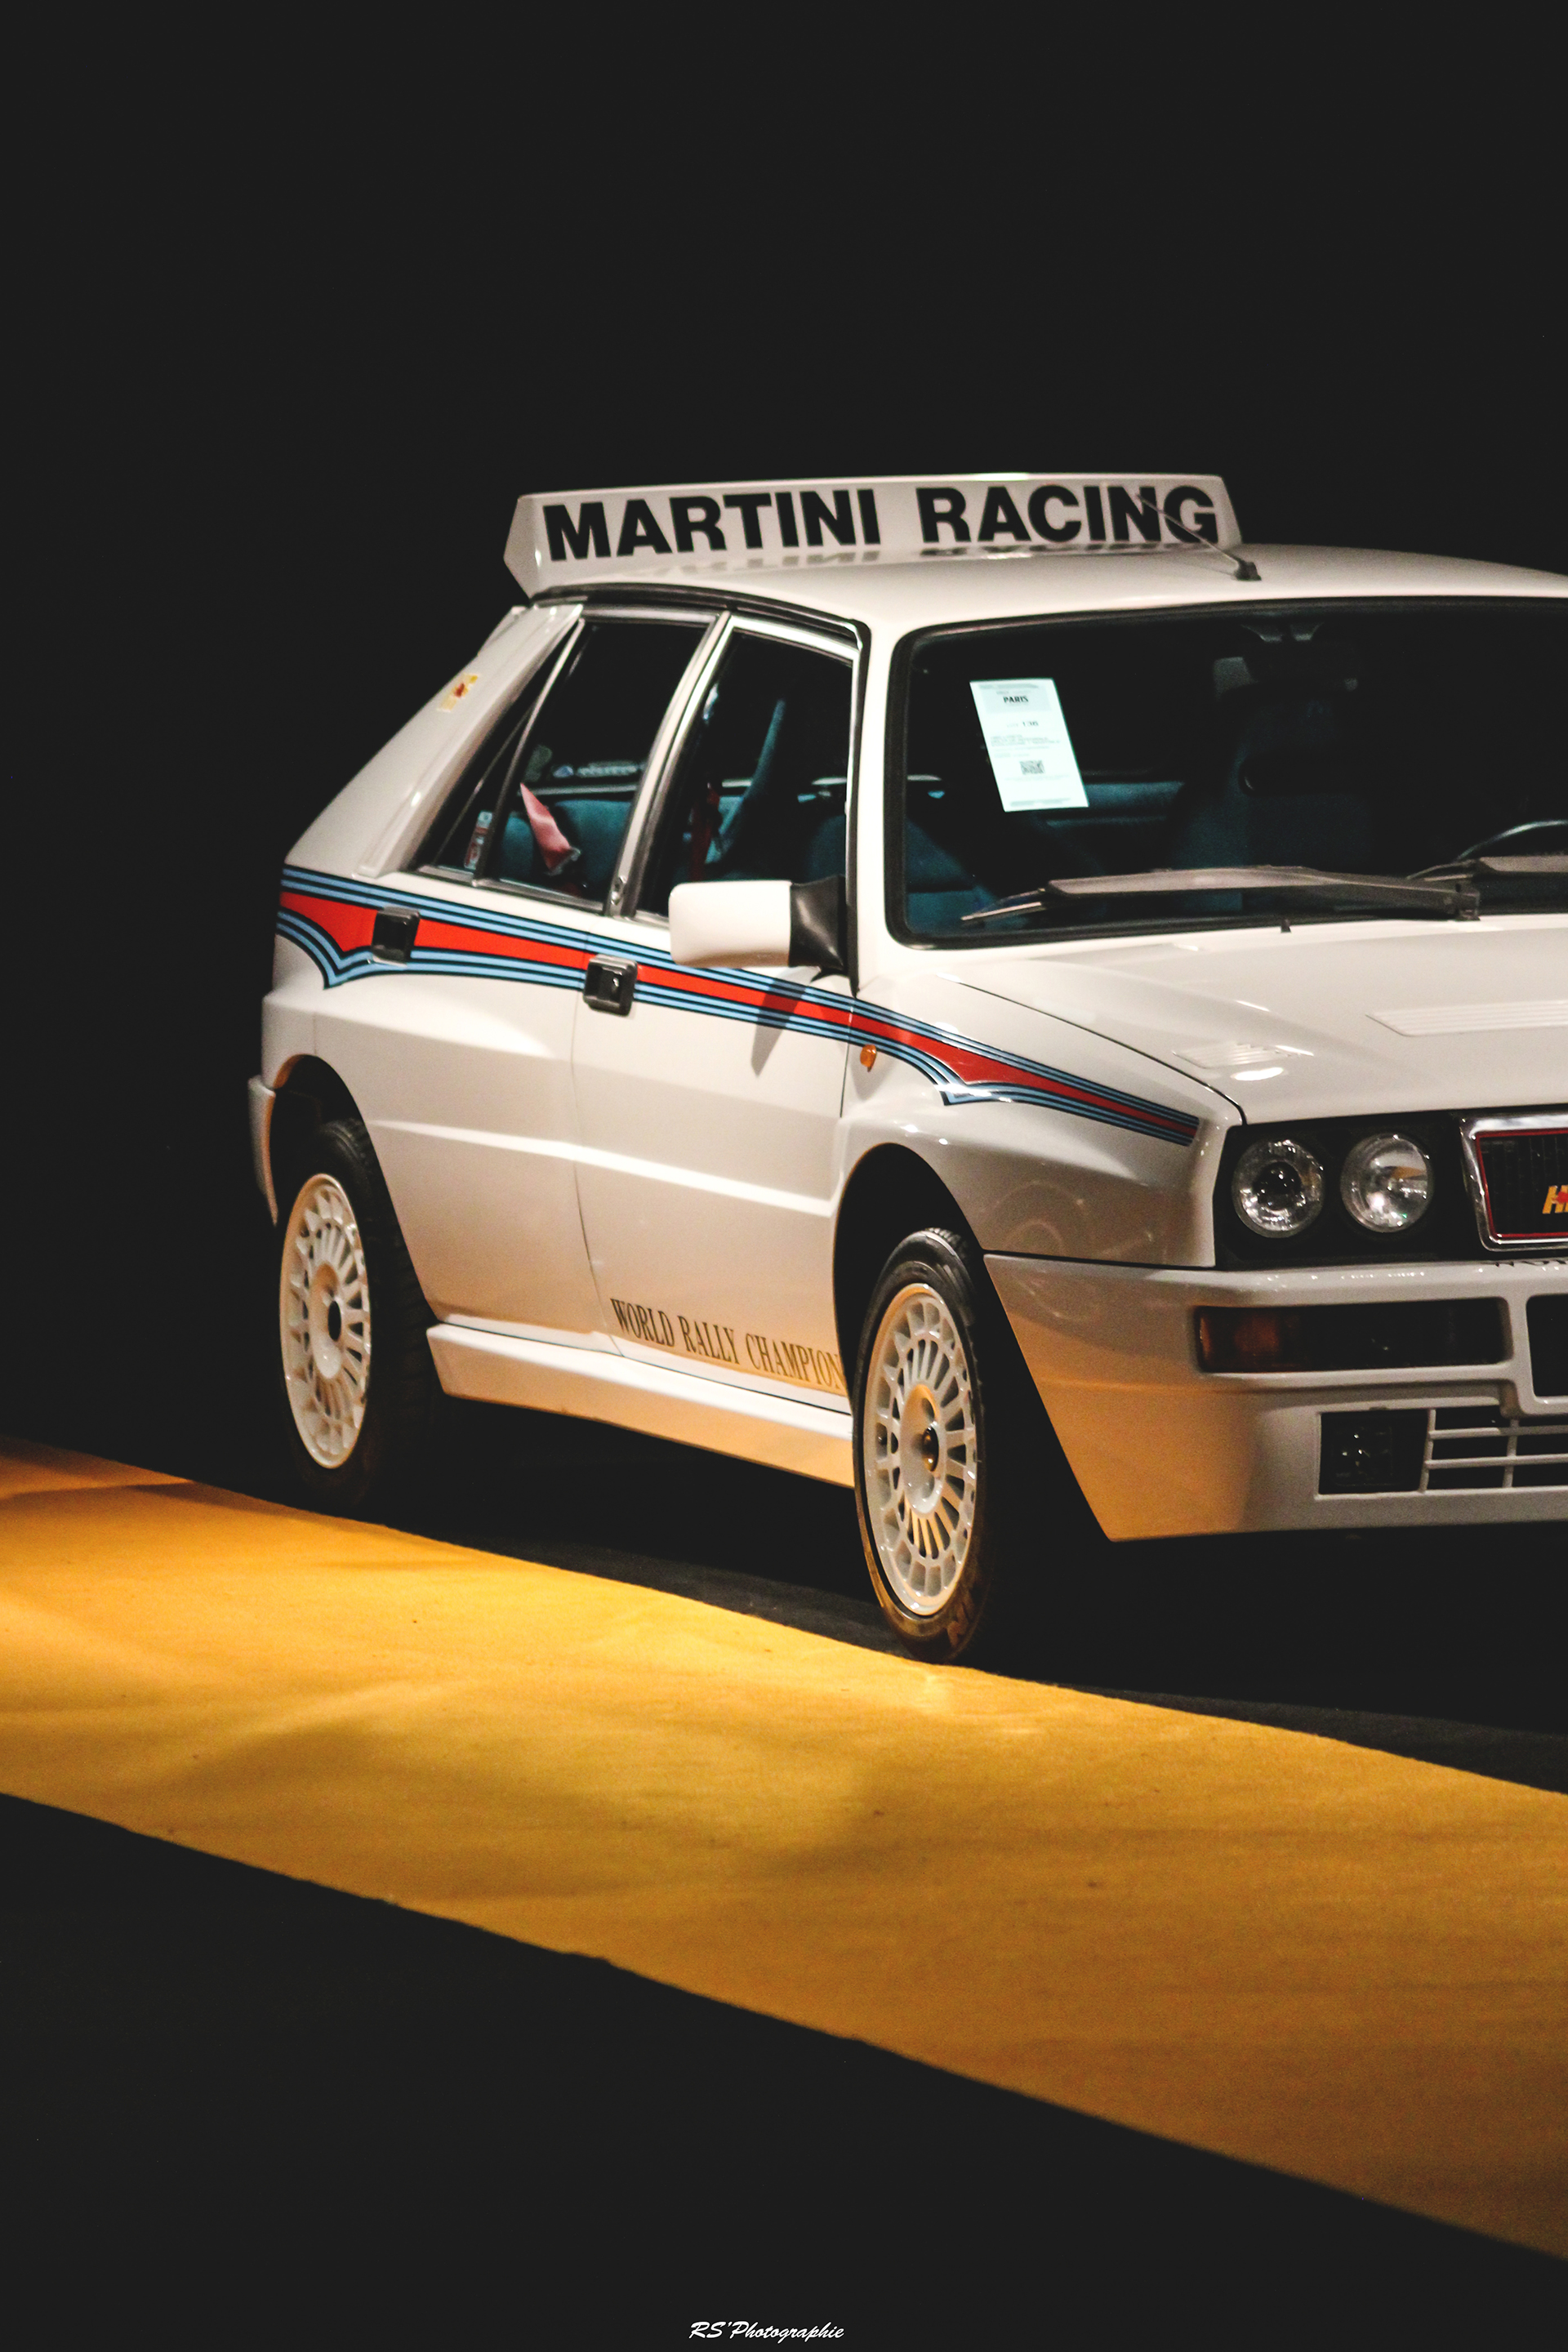 Lancia Delta HF Integrale Evoluzione 1 Martini 6 - 1992- RM - Auctions - 2016 - Arnaud Demasier RS Photographie